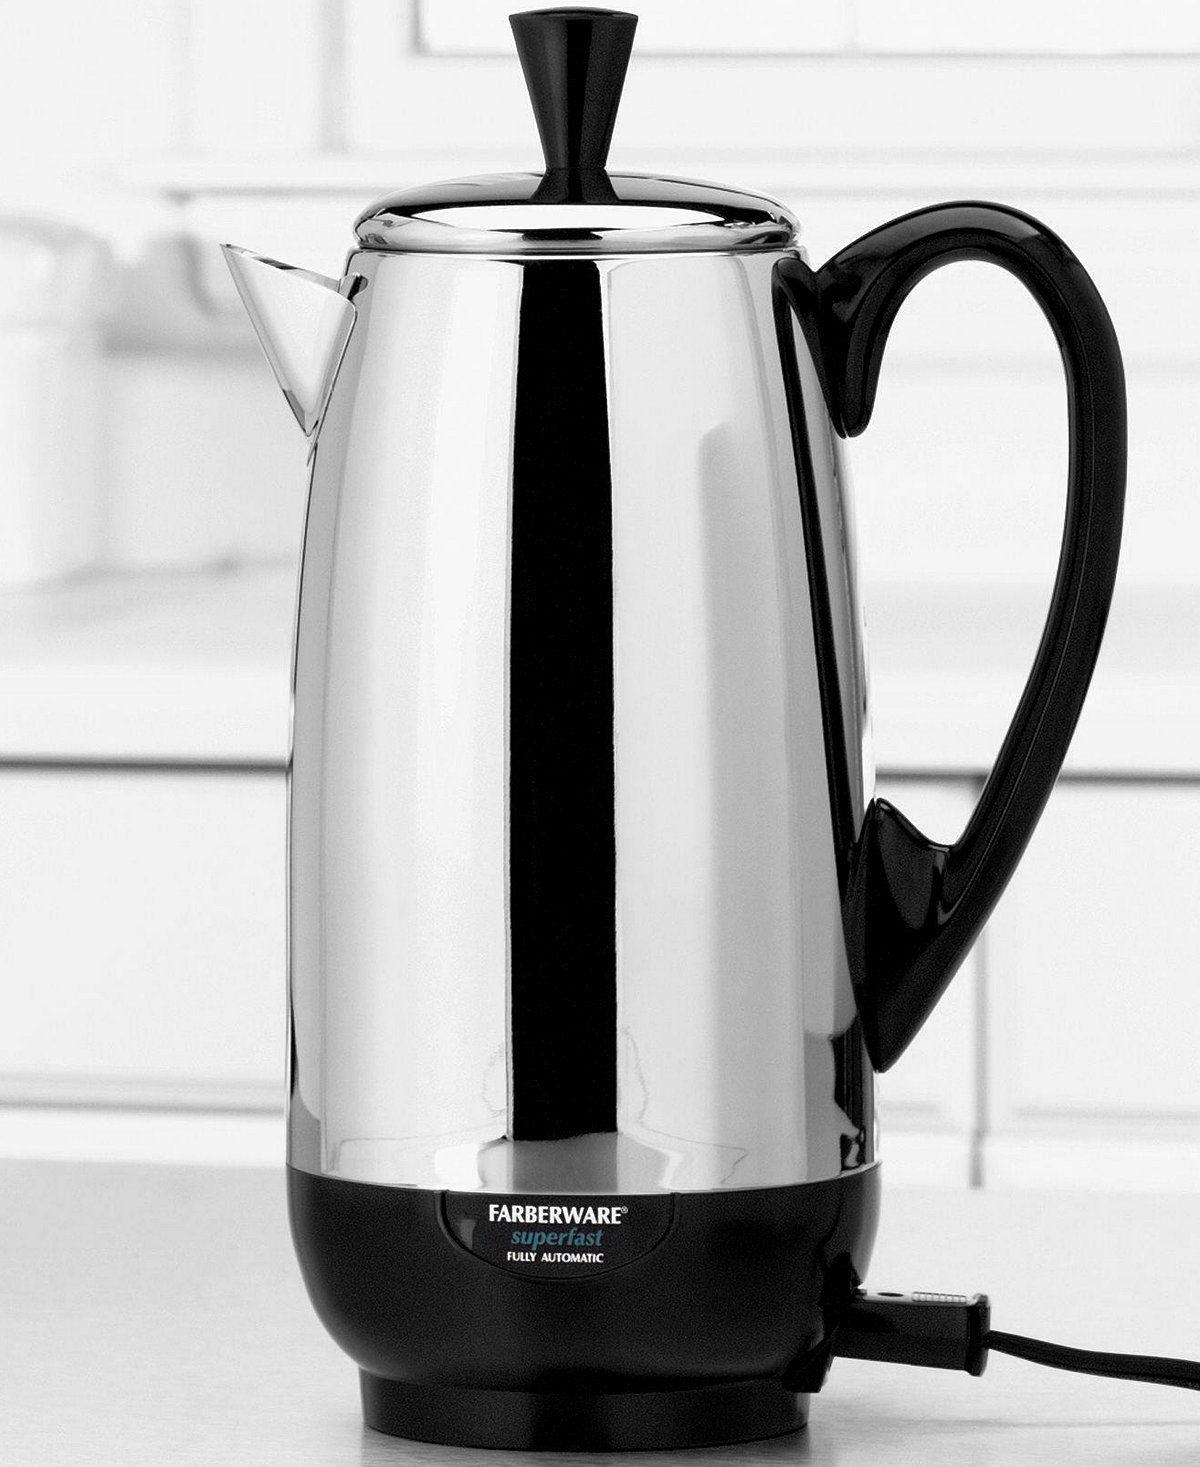 4-12 Cup Faberware Superfast STAINLESS Steel Percolator Fully Automatic - CHROME F ab erw are